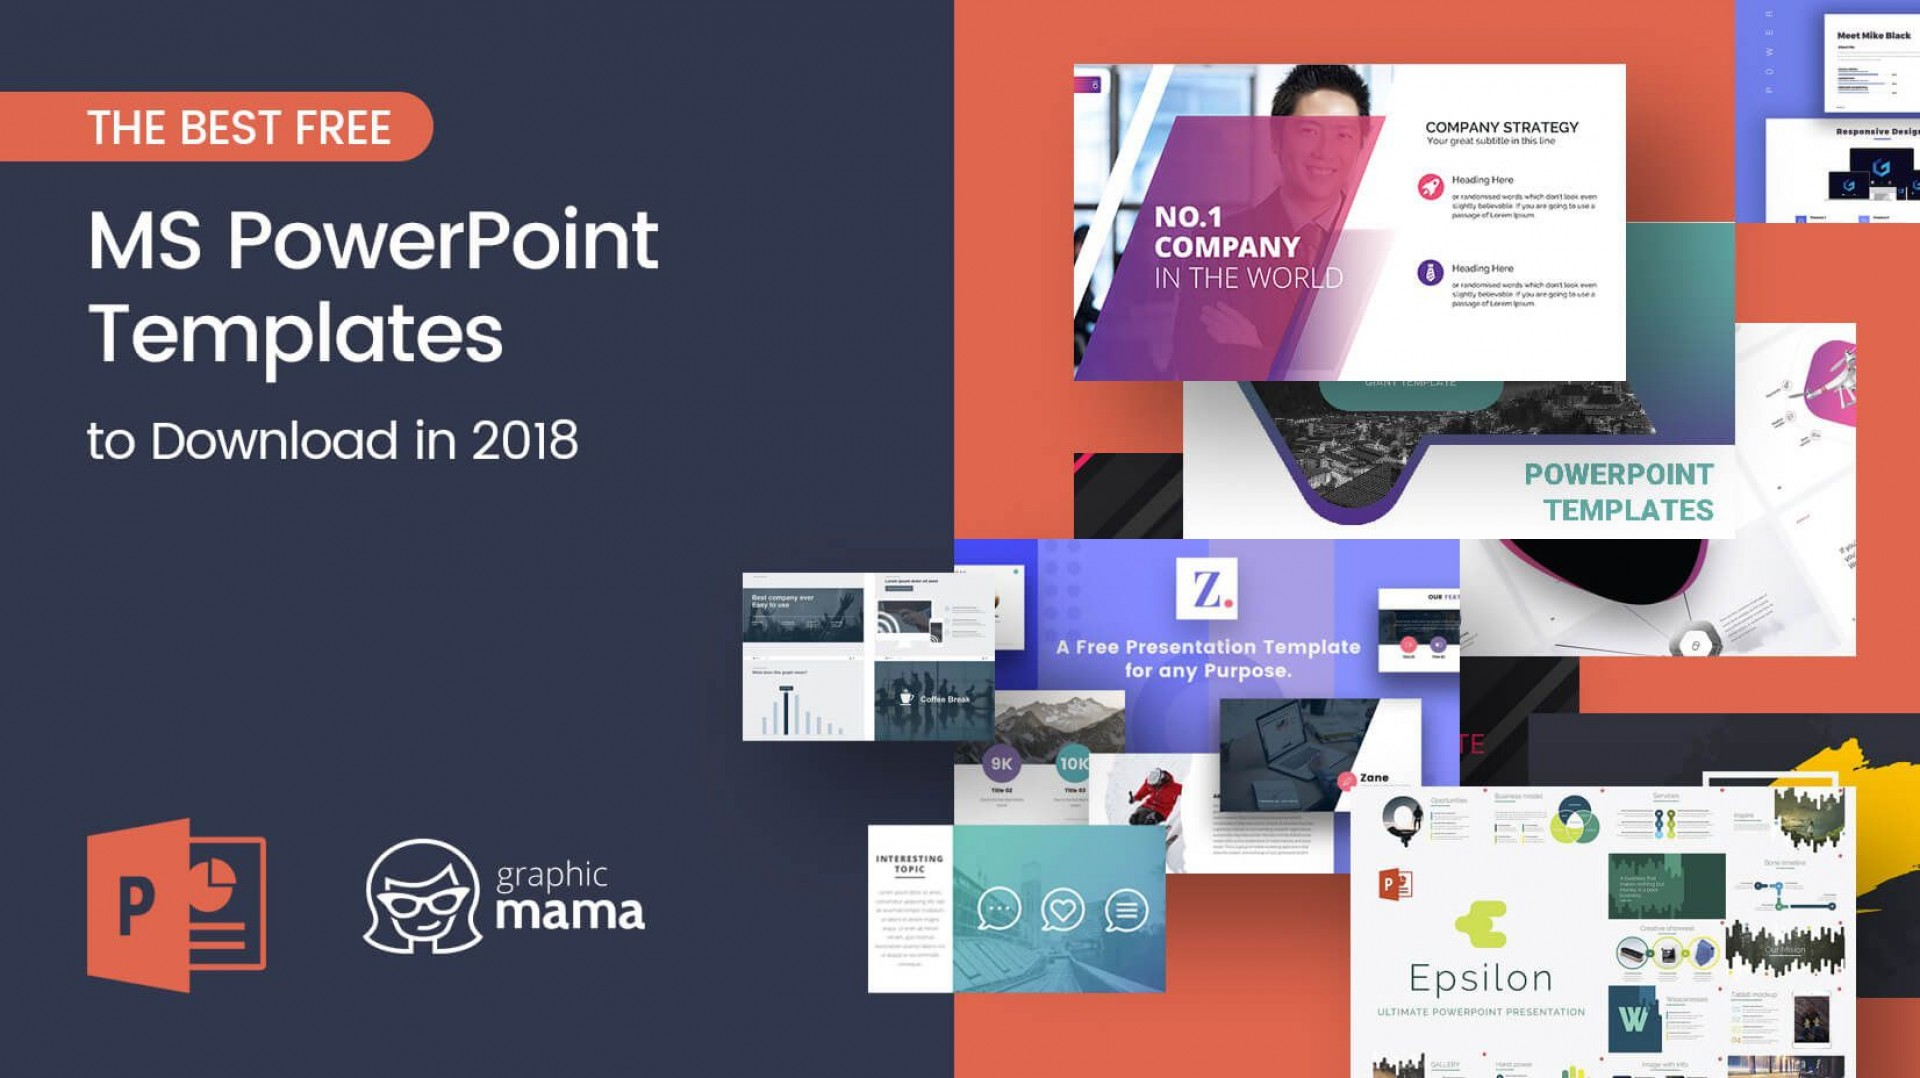 008 Outstanding Free Downloadable Ppt Template Idea  Templates For College Project Presentation Download Animated Medical1920